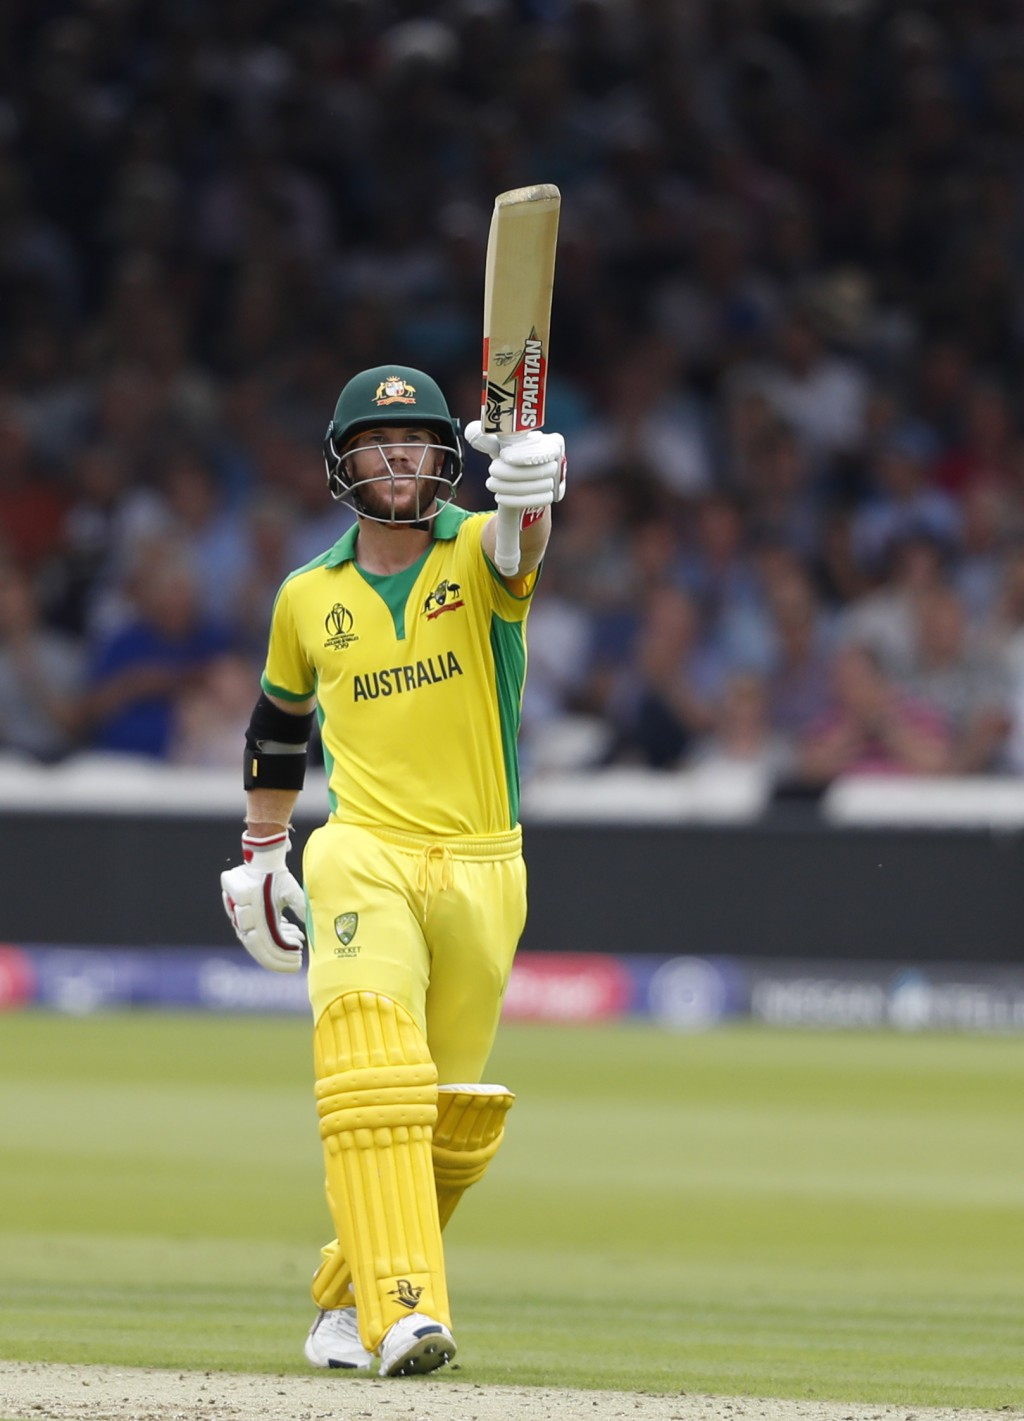 Australia's David Warner celebrates after getting 50 runs not out during their Cricket World Cup match between England and Australia at Lord's cricket...